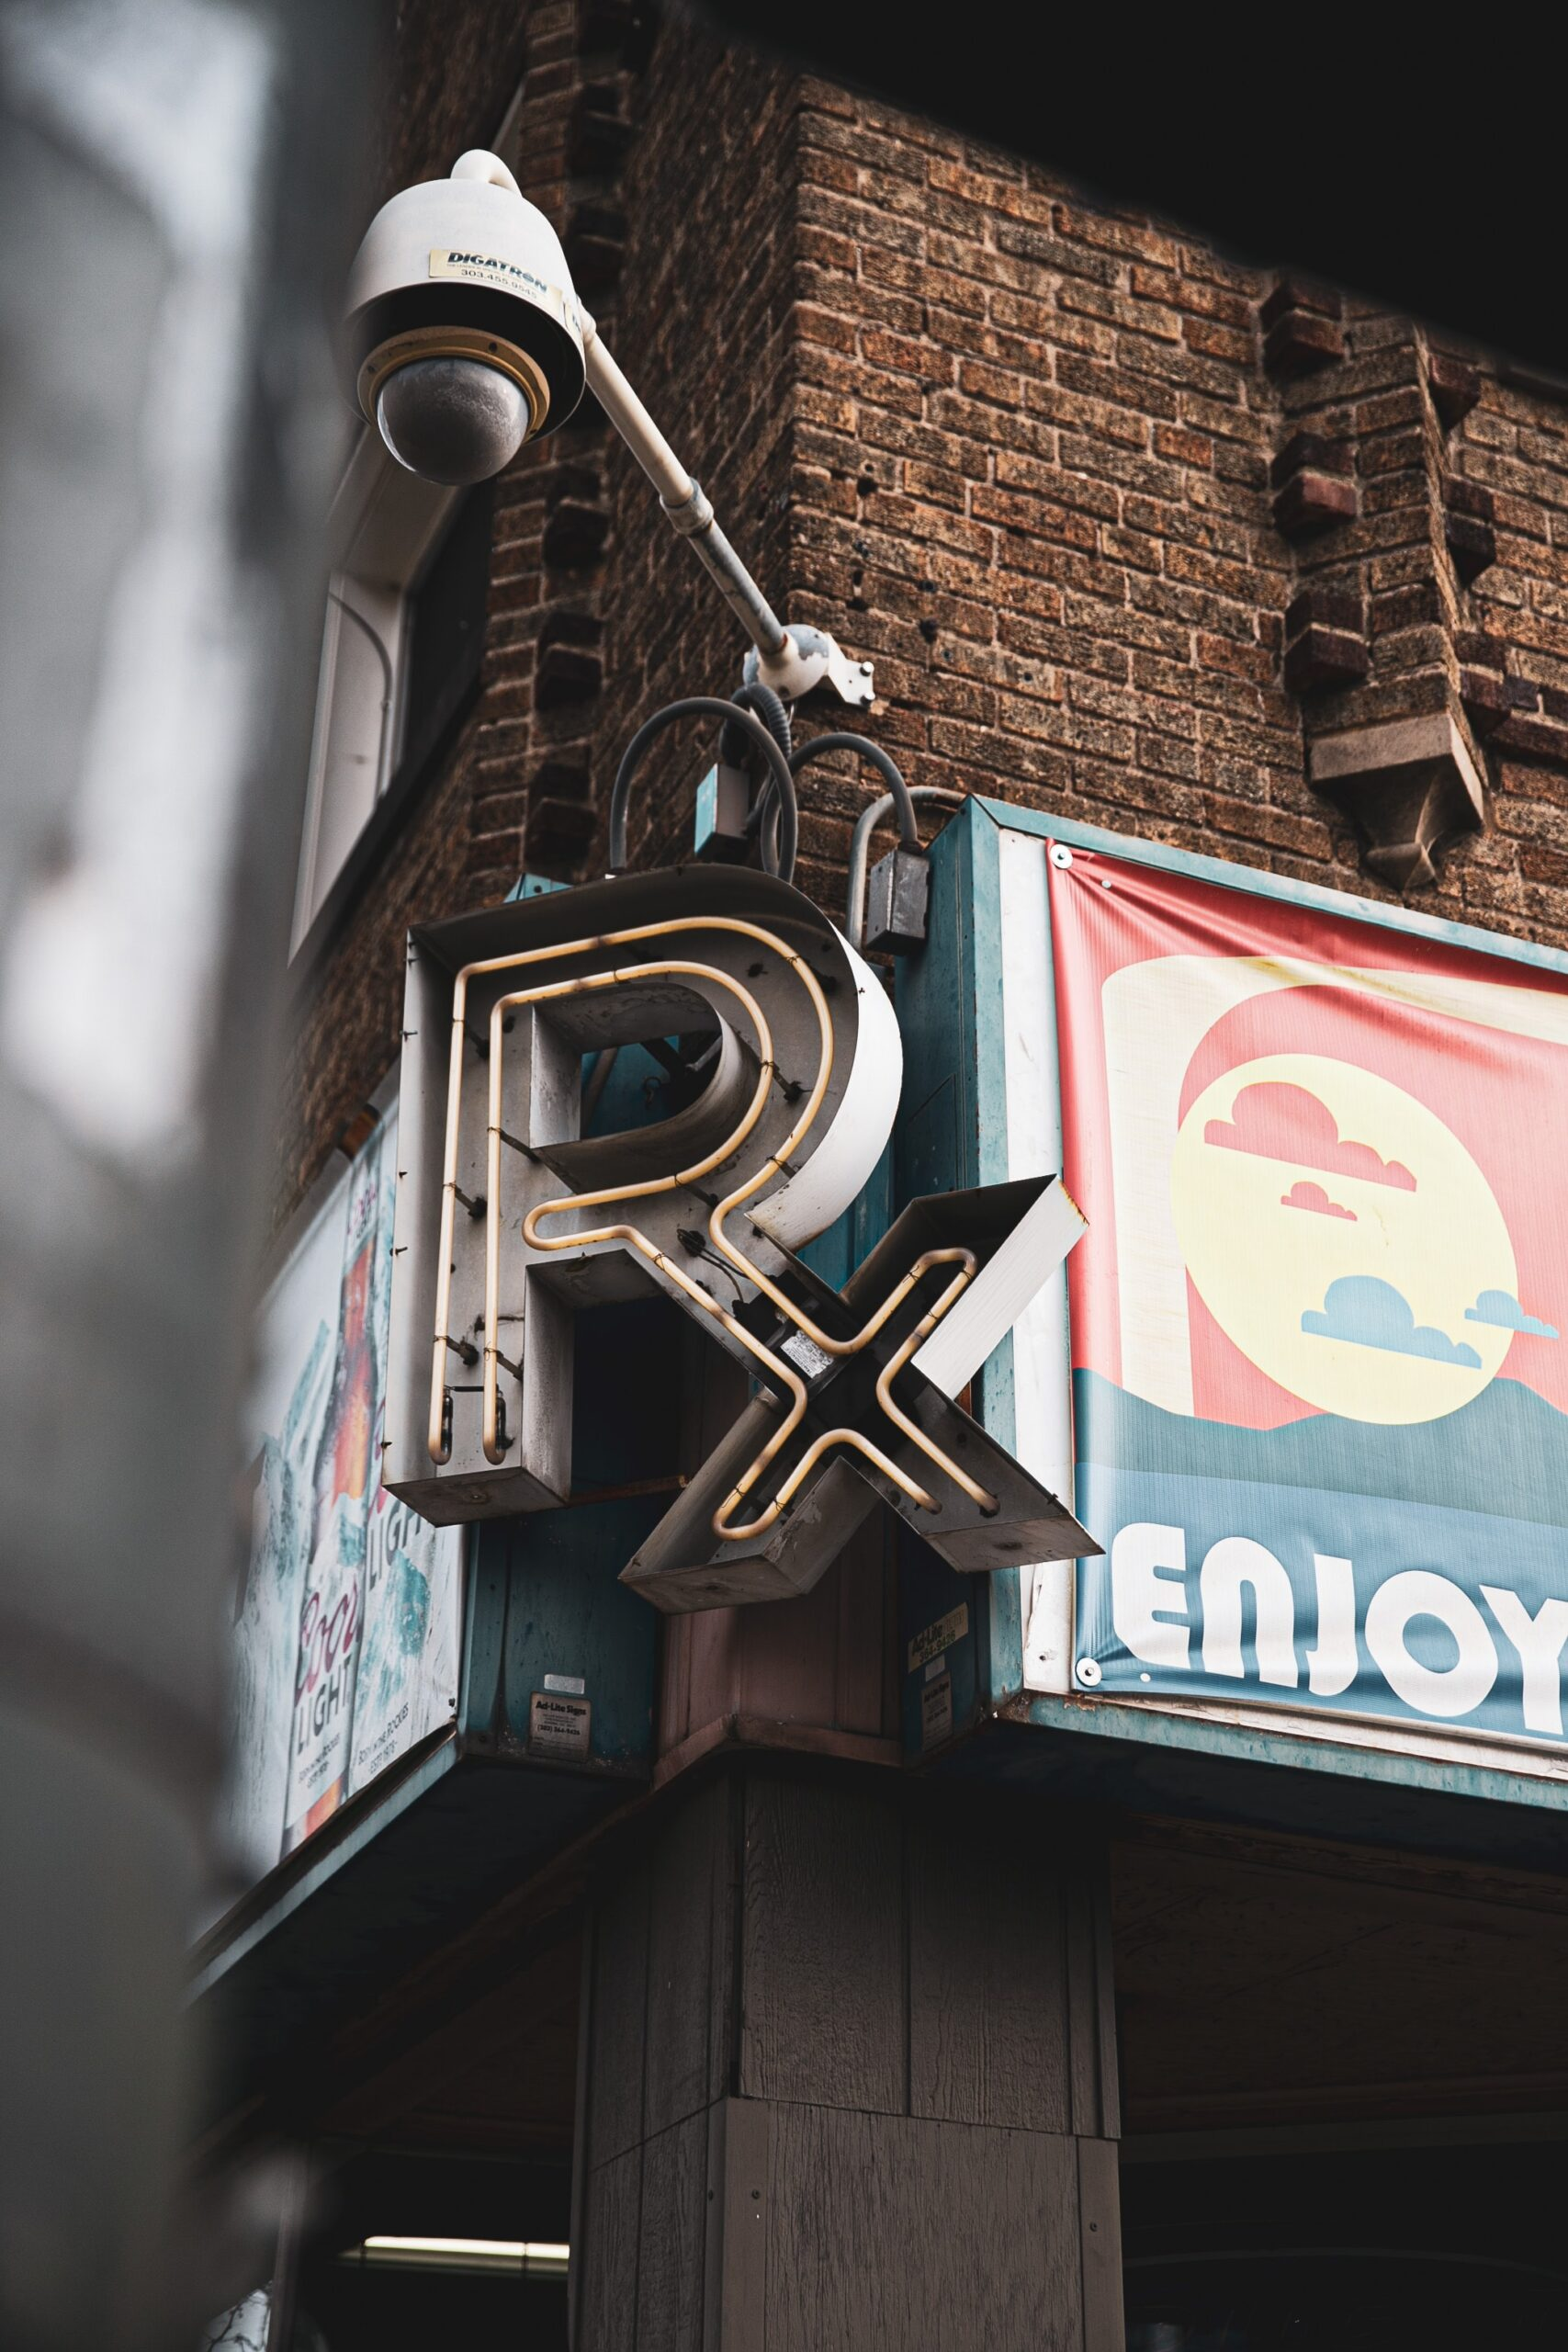 Rx sign on brick building